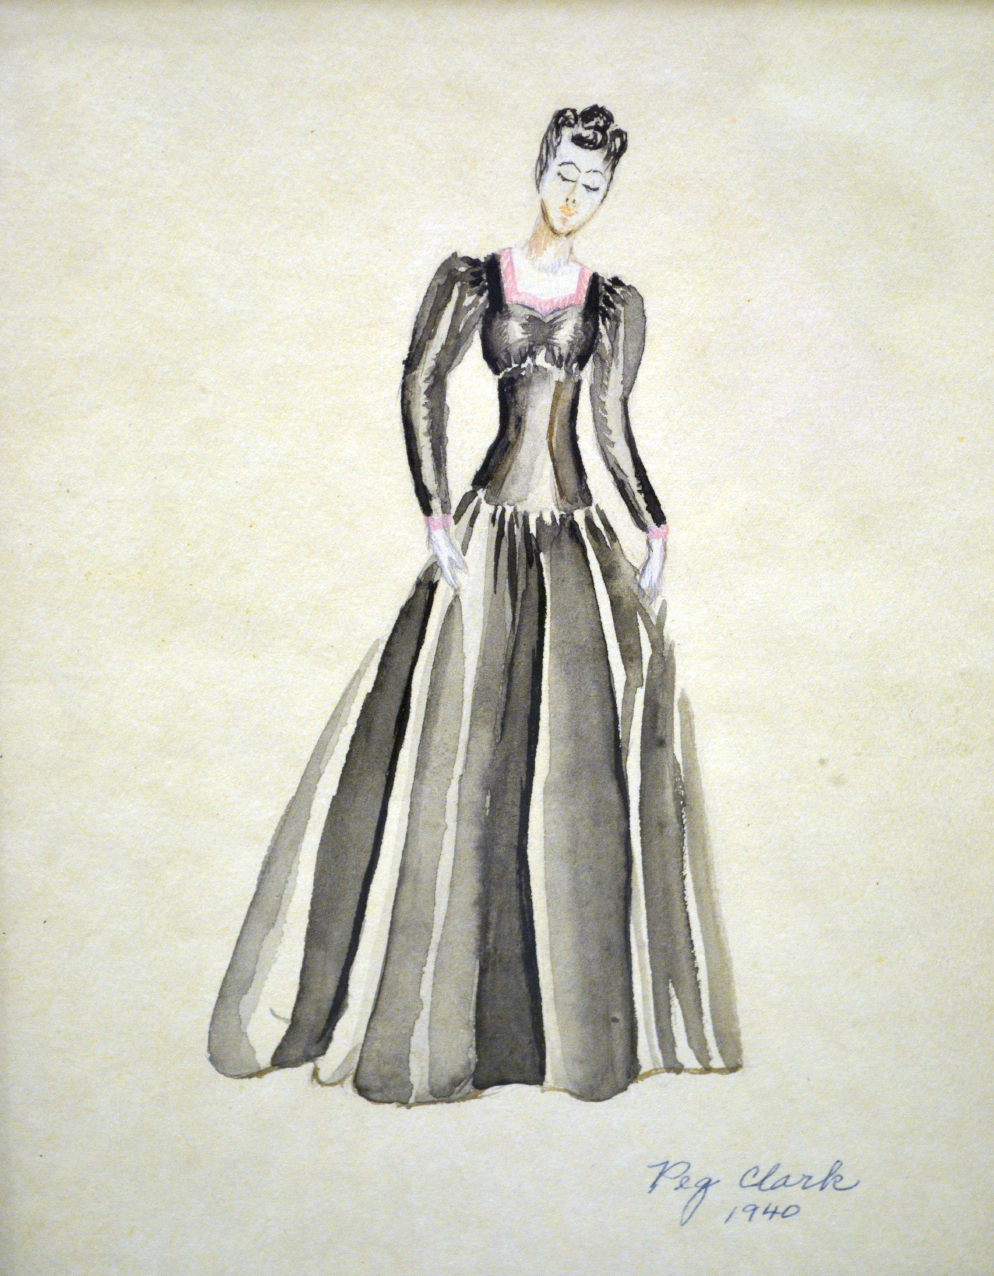 Peg Clark Fashion Sketch